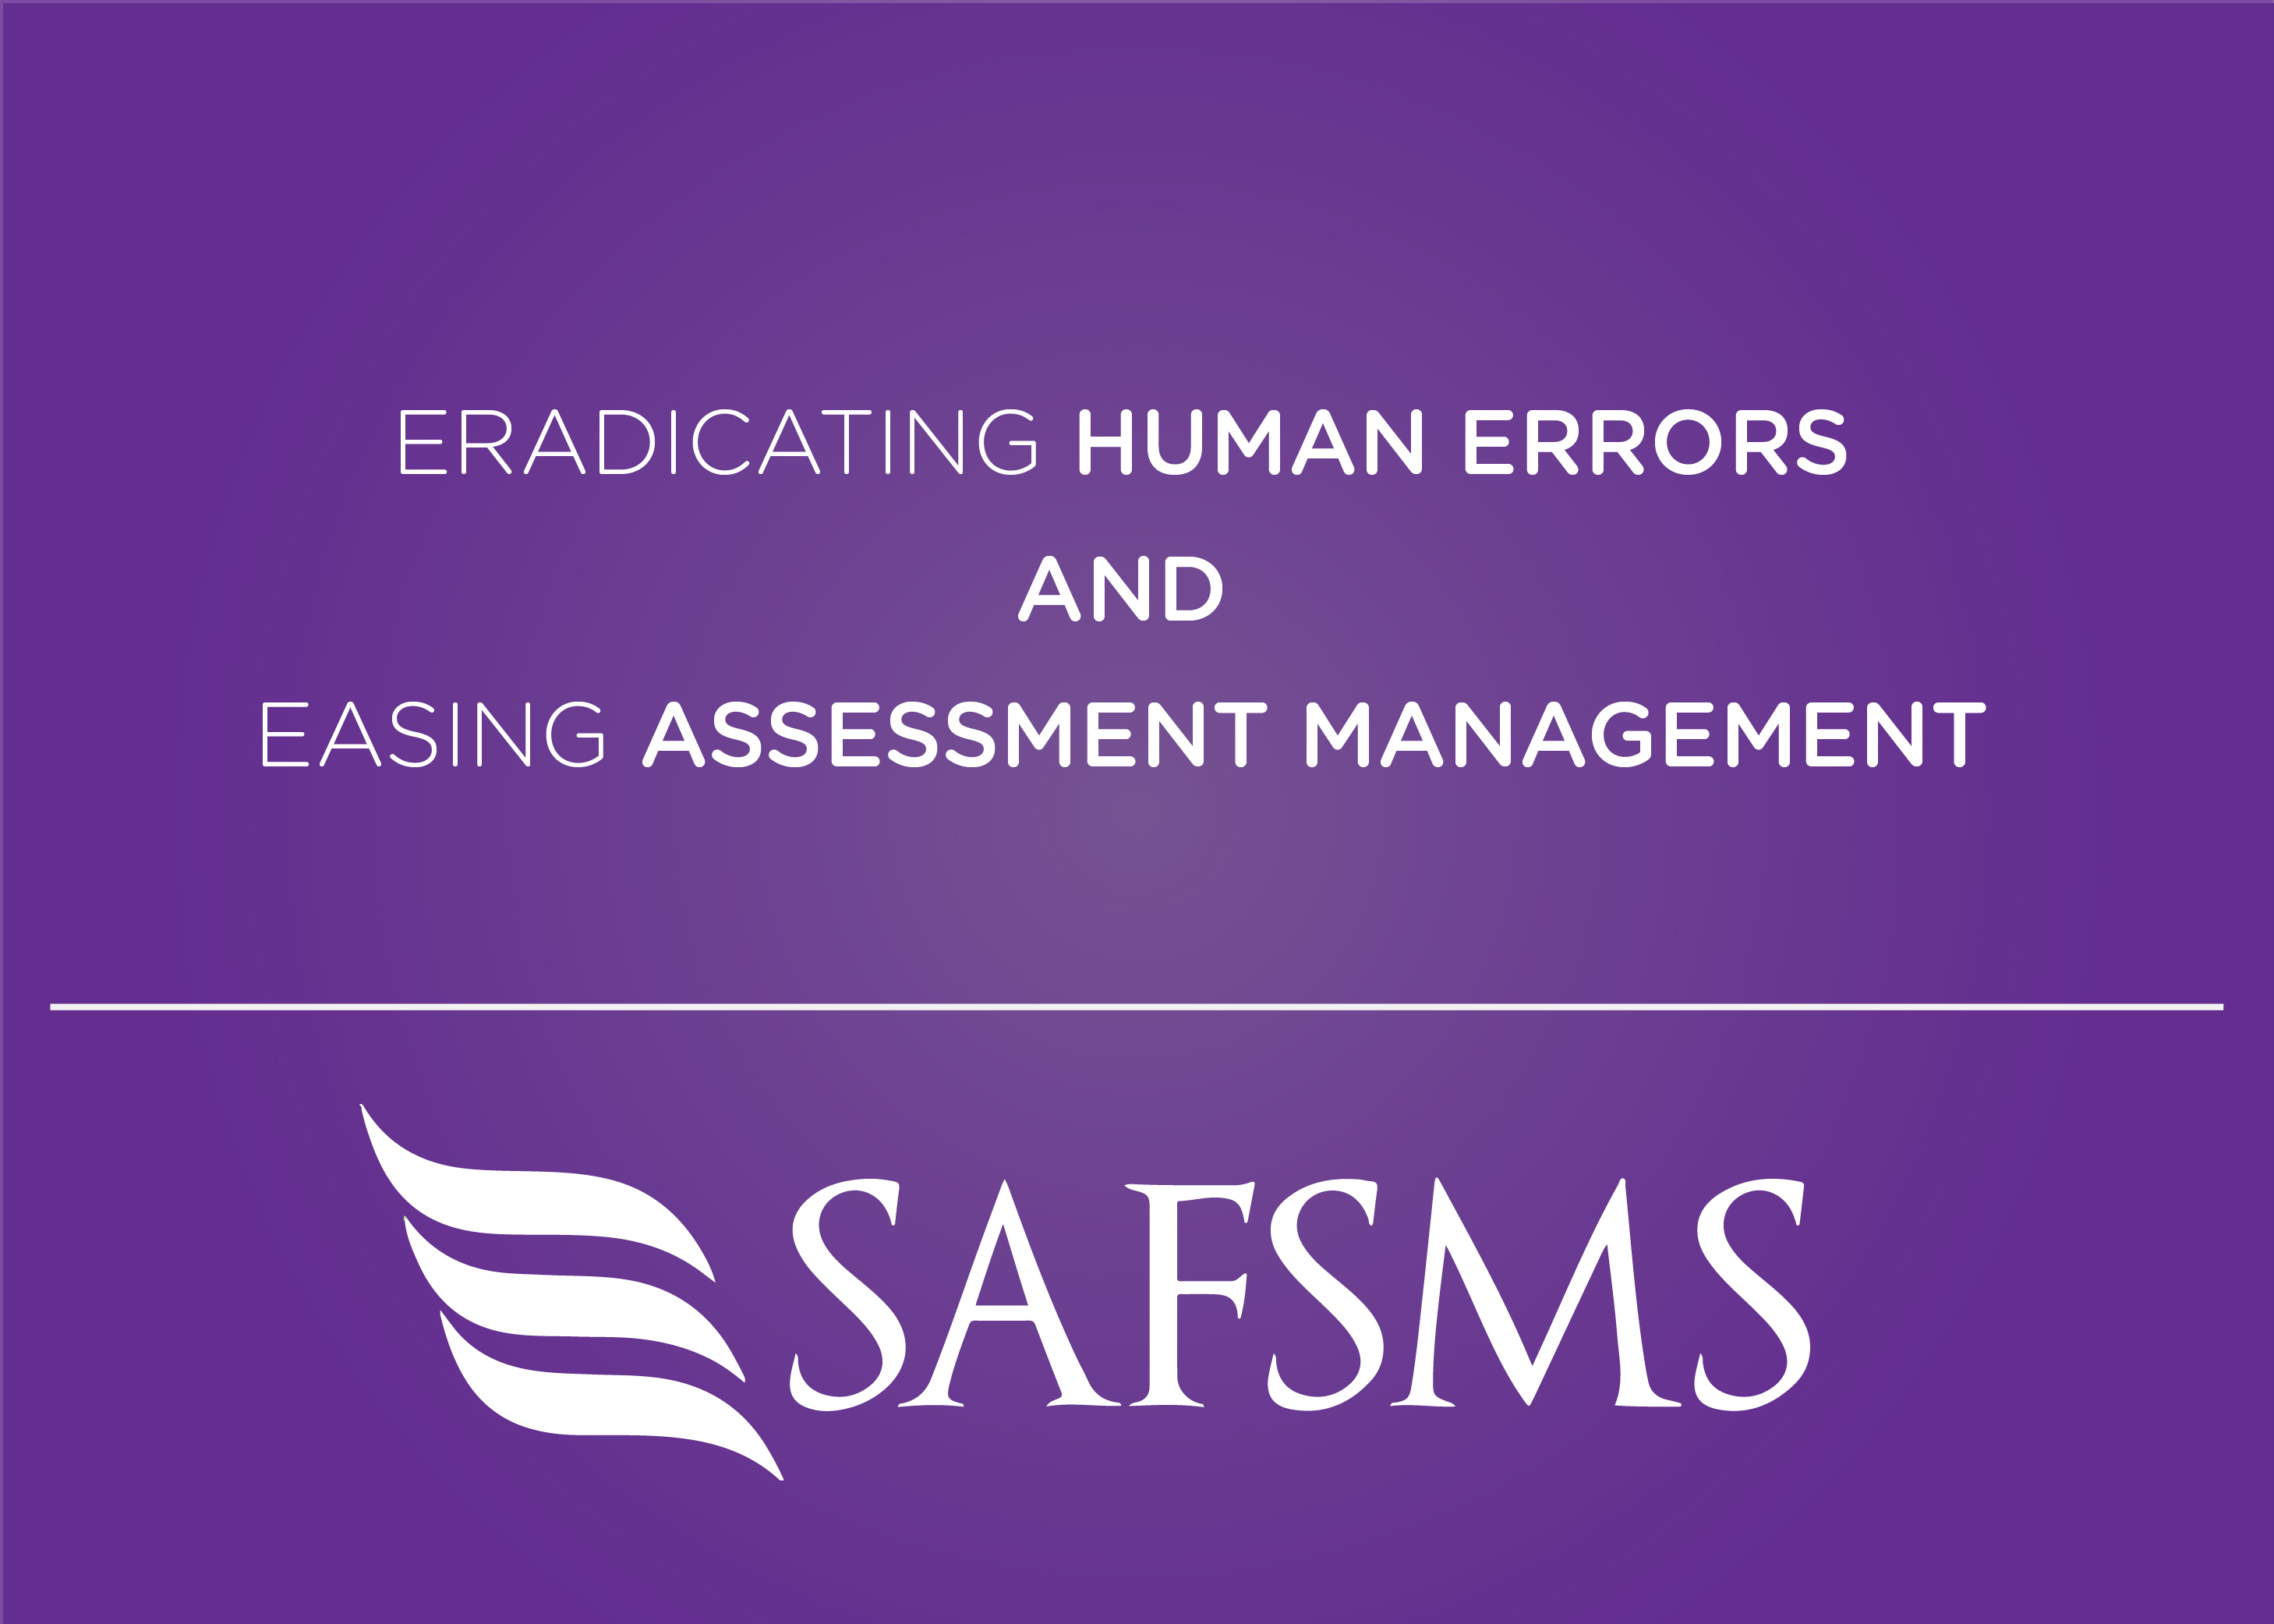 Eradicating Human Errors and Easing Assessment Management